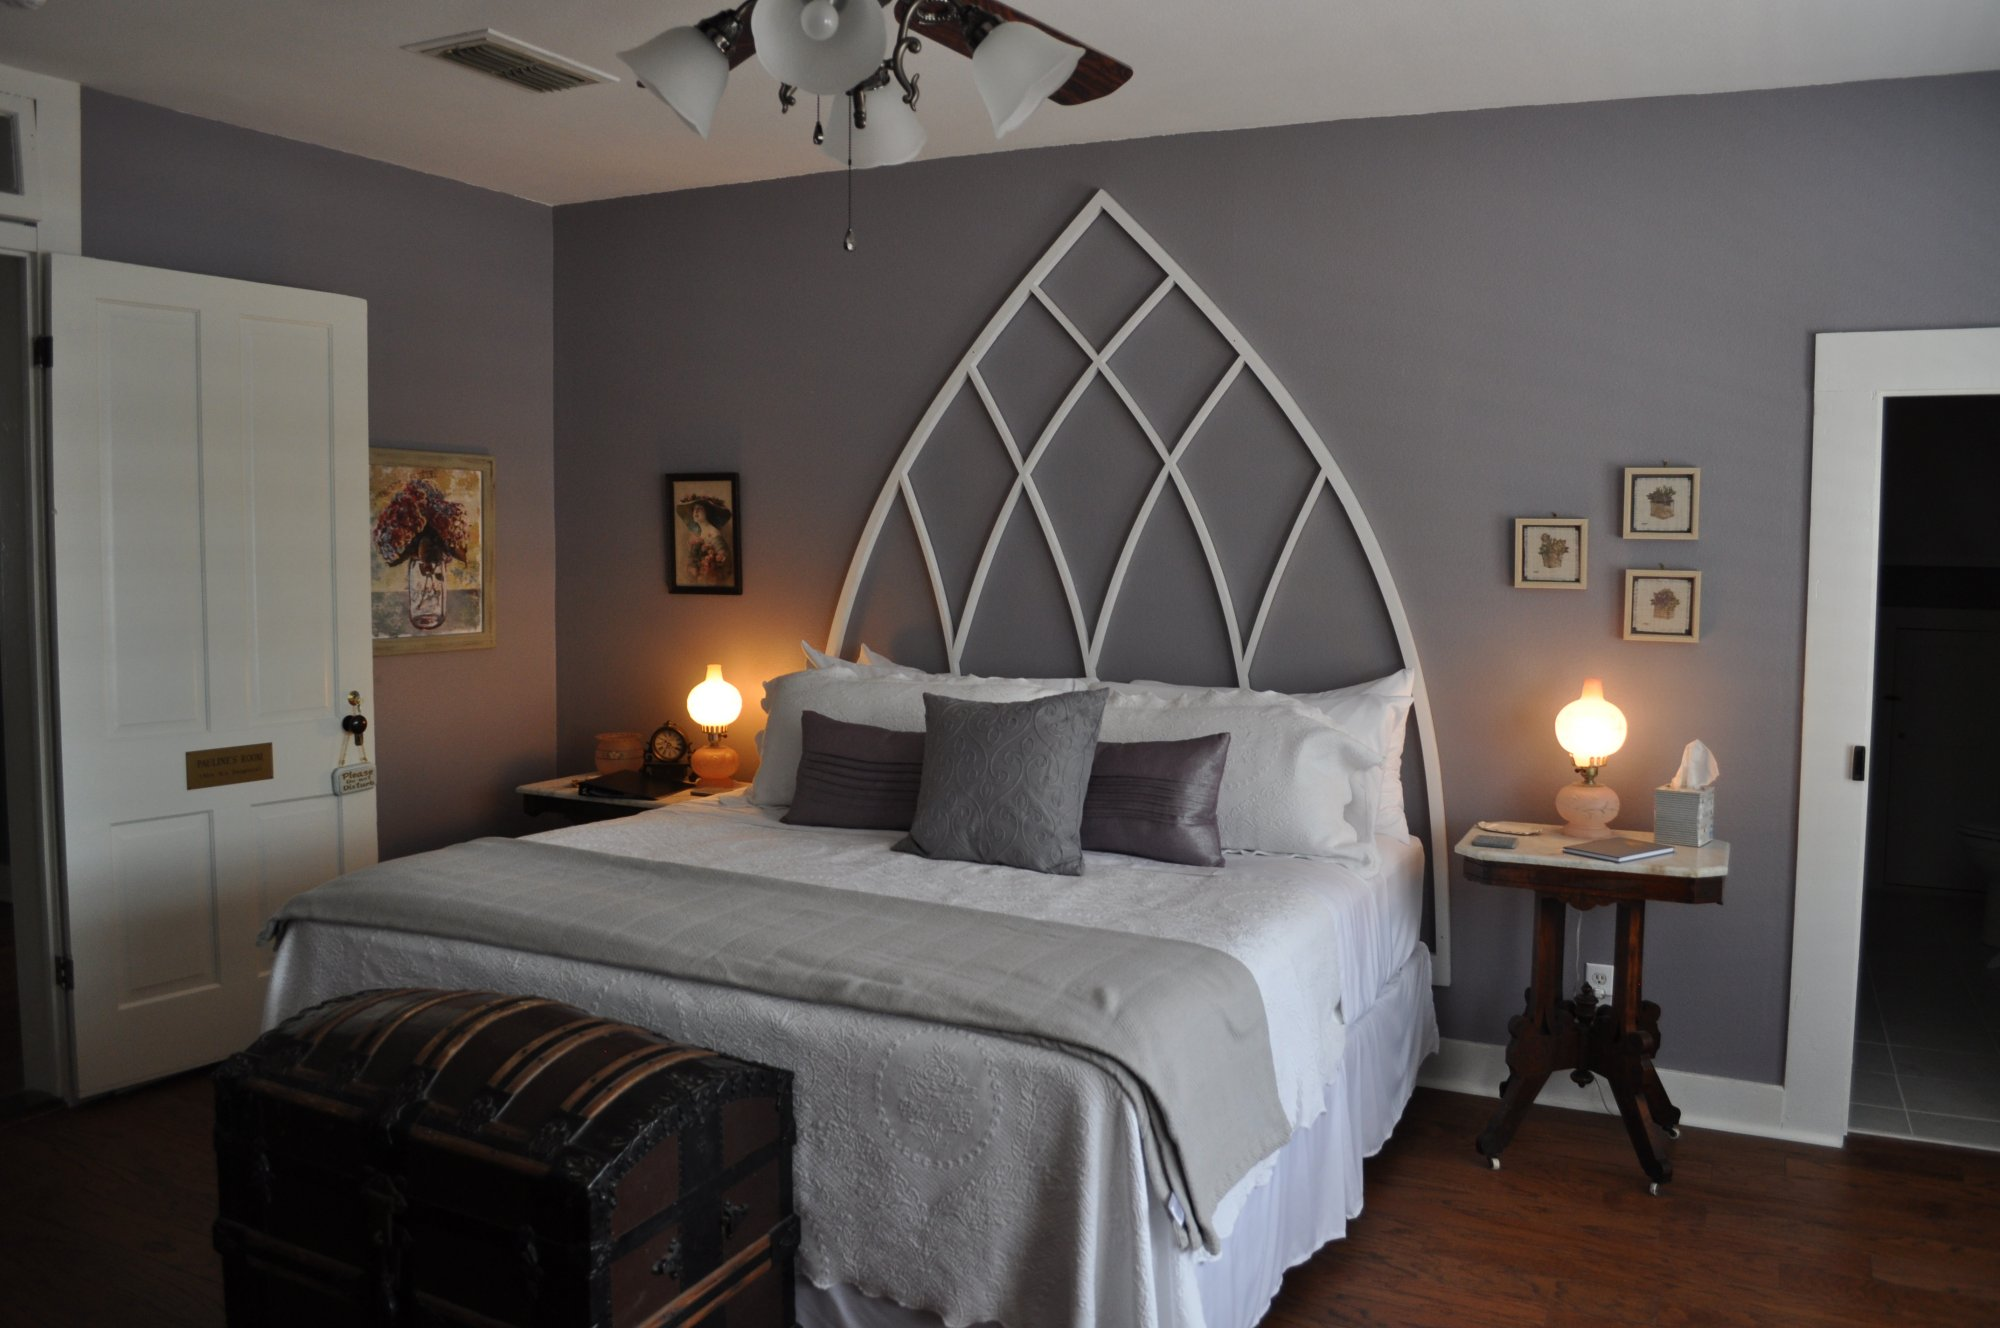 The Largest Room Upstairs Facing The Historic Downtown Area, This Room Was  Named After Mrs. Kennedyu0027s Daughter. Painted In Hues Of A Purple Gray, The  Room ...